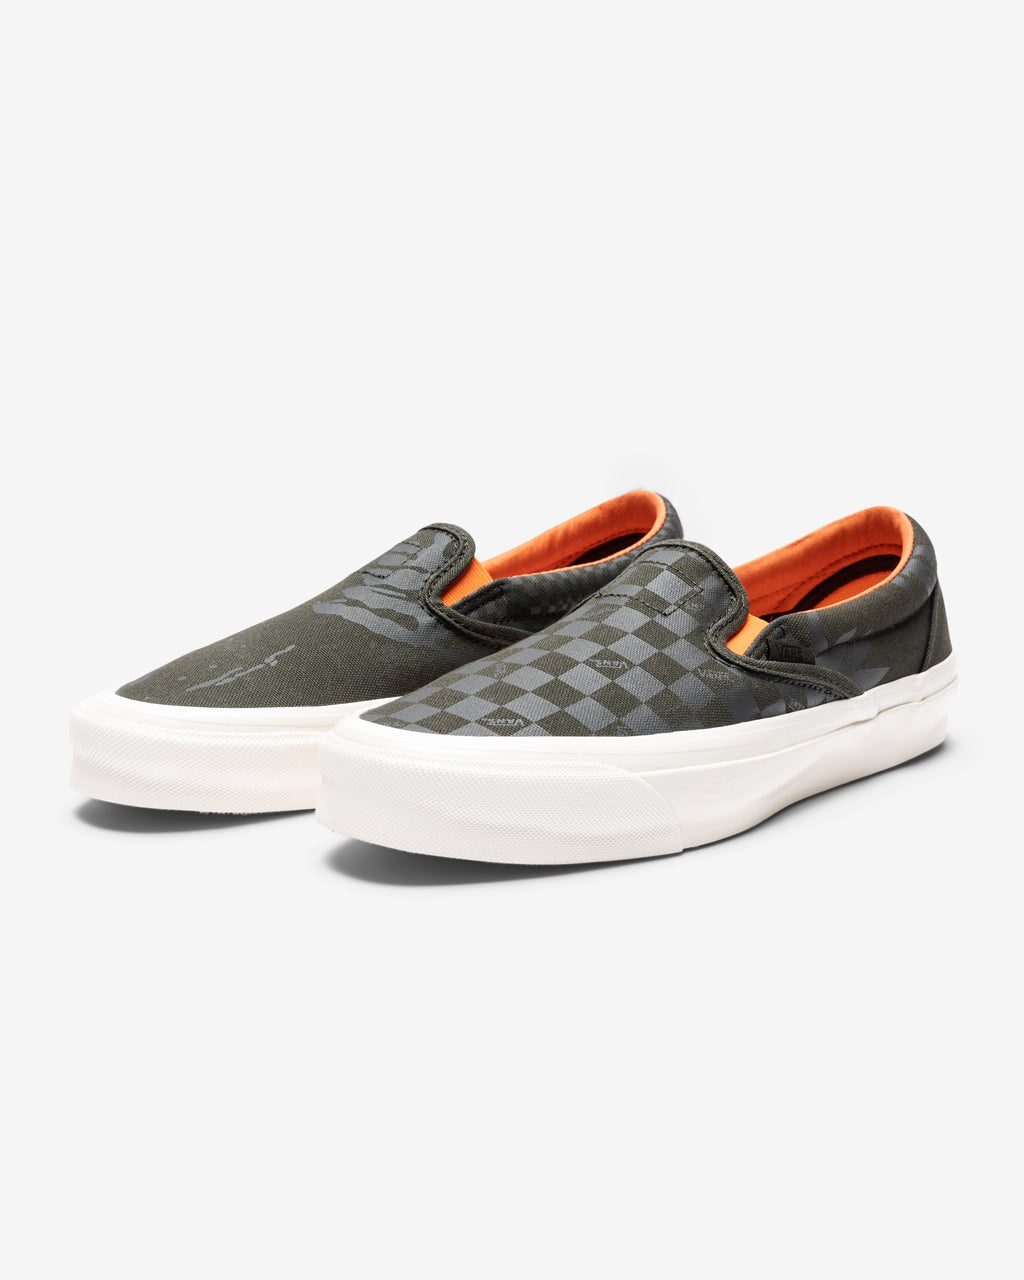 VANS X PORTER OG CLASSIC SLIP-ON - FORESTNIGHT/ BLACKINK